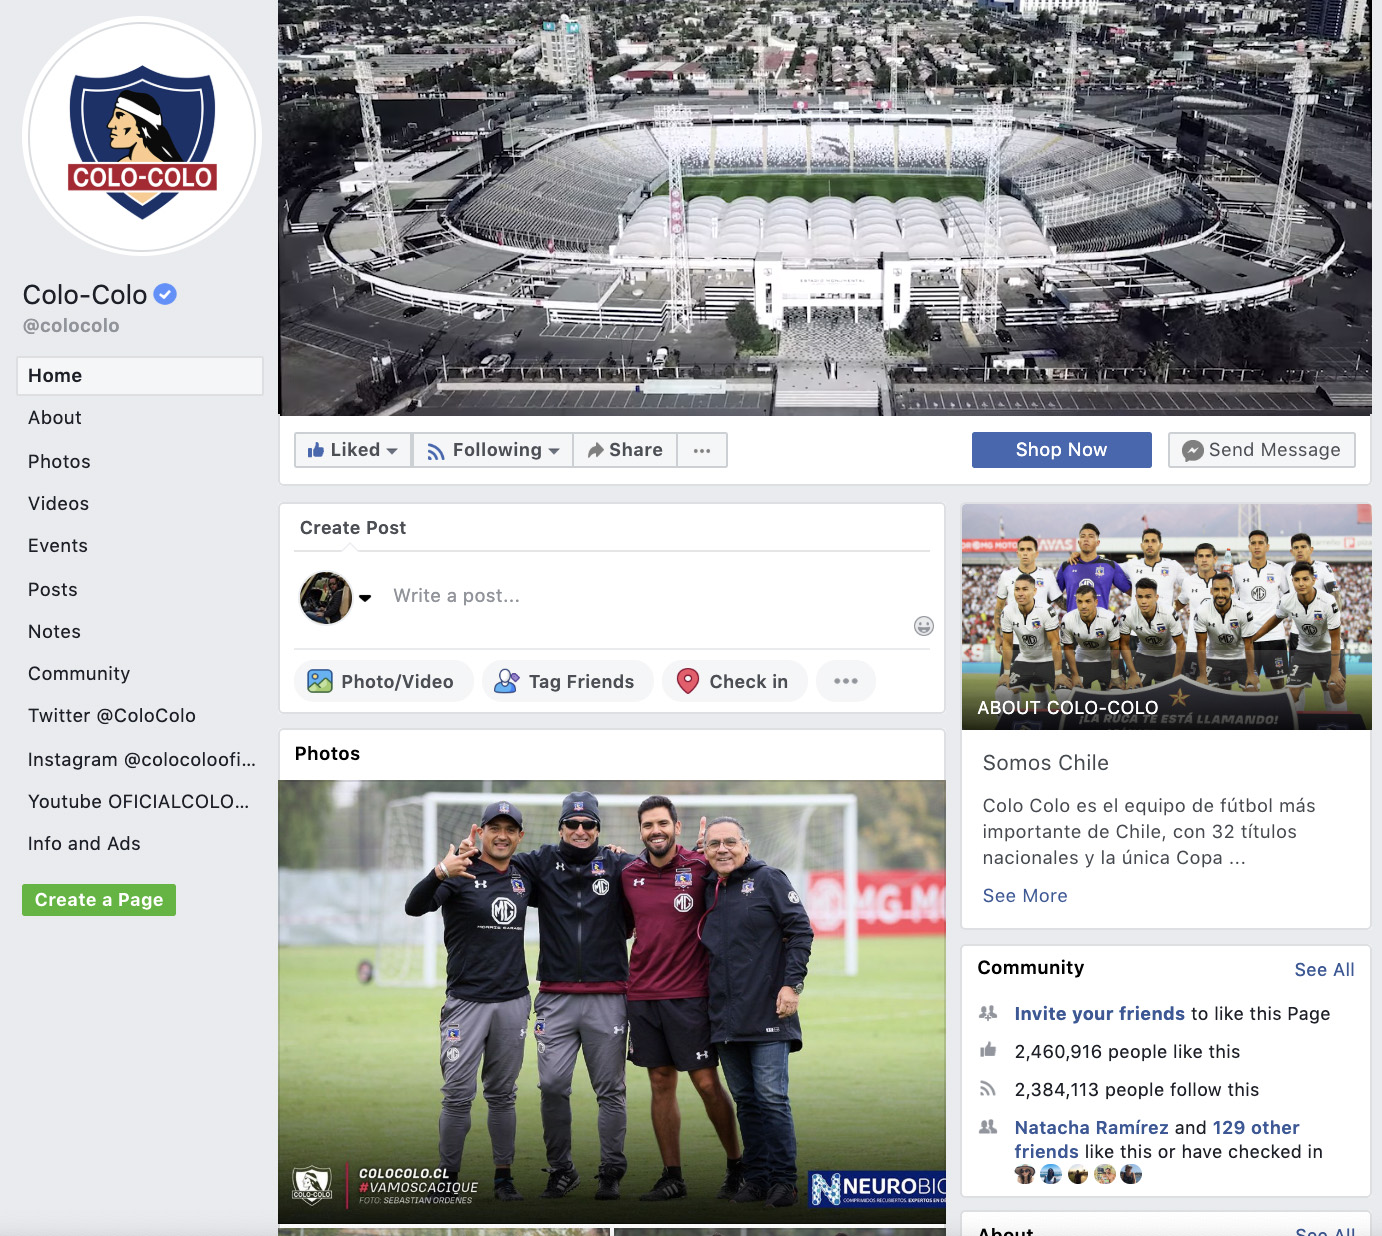 Colo-Colo Fanpage in Facebook